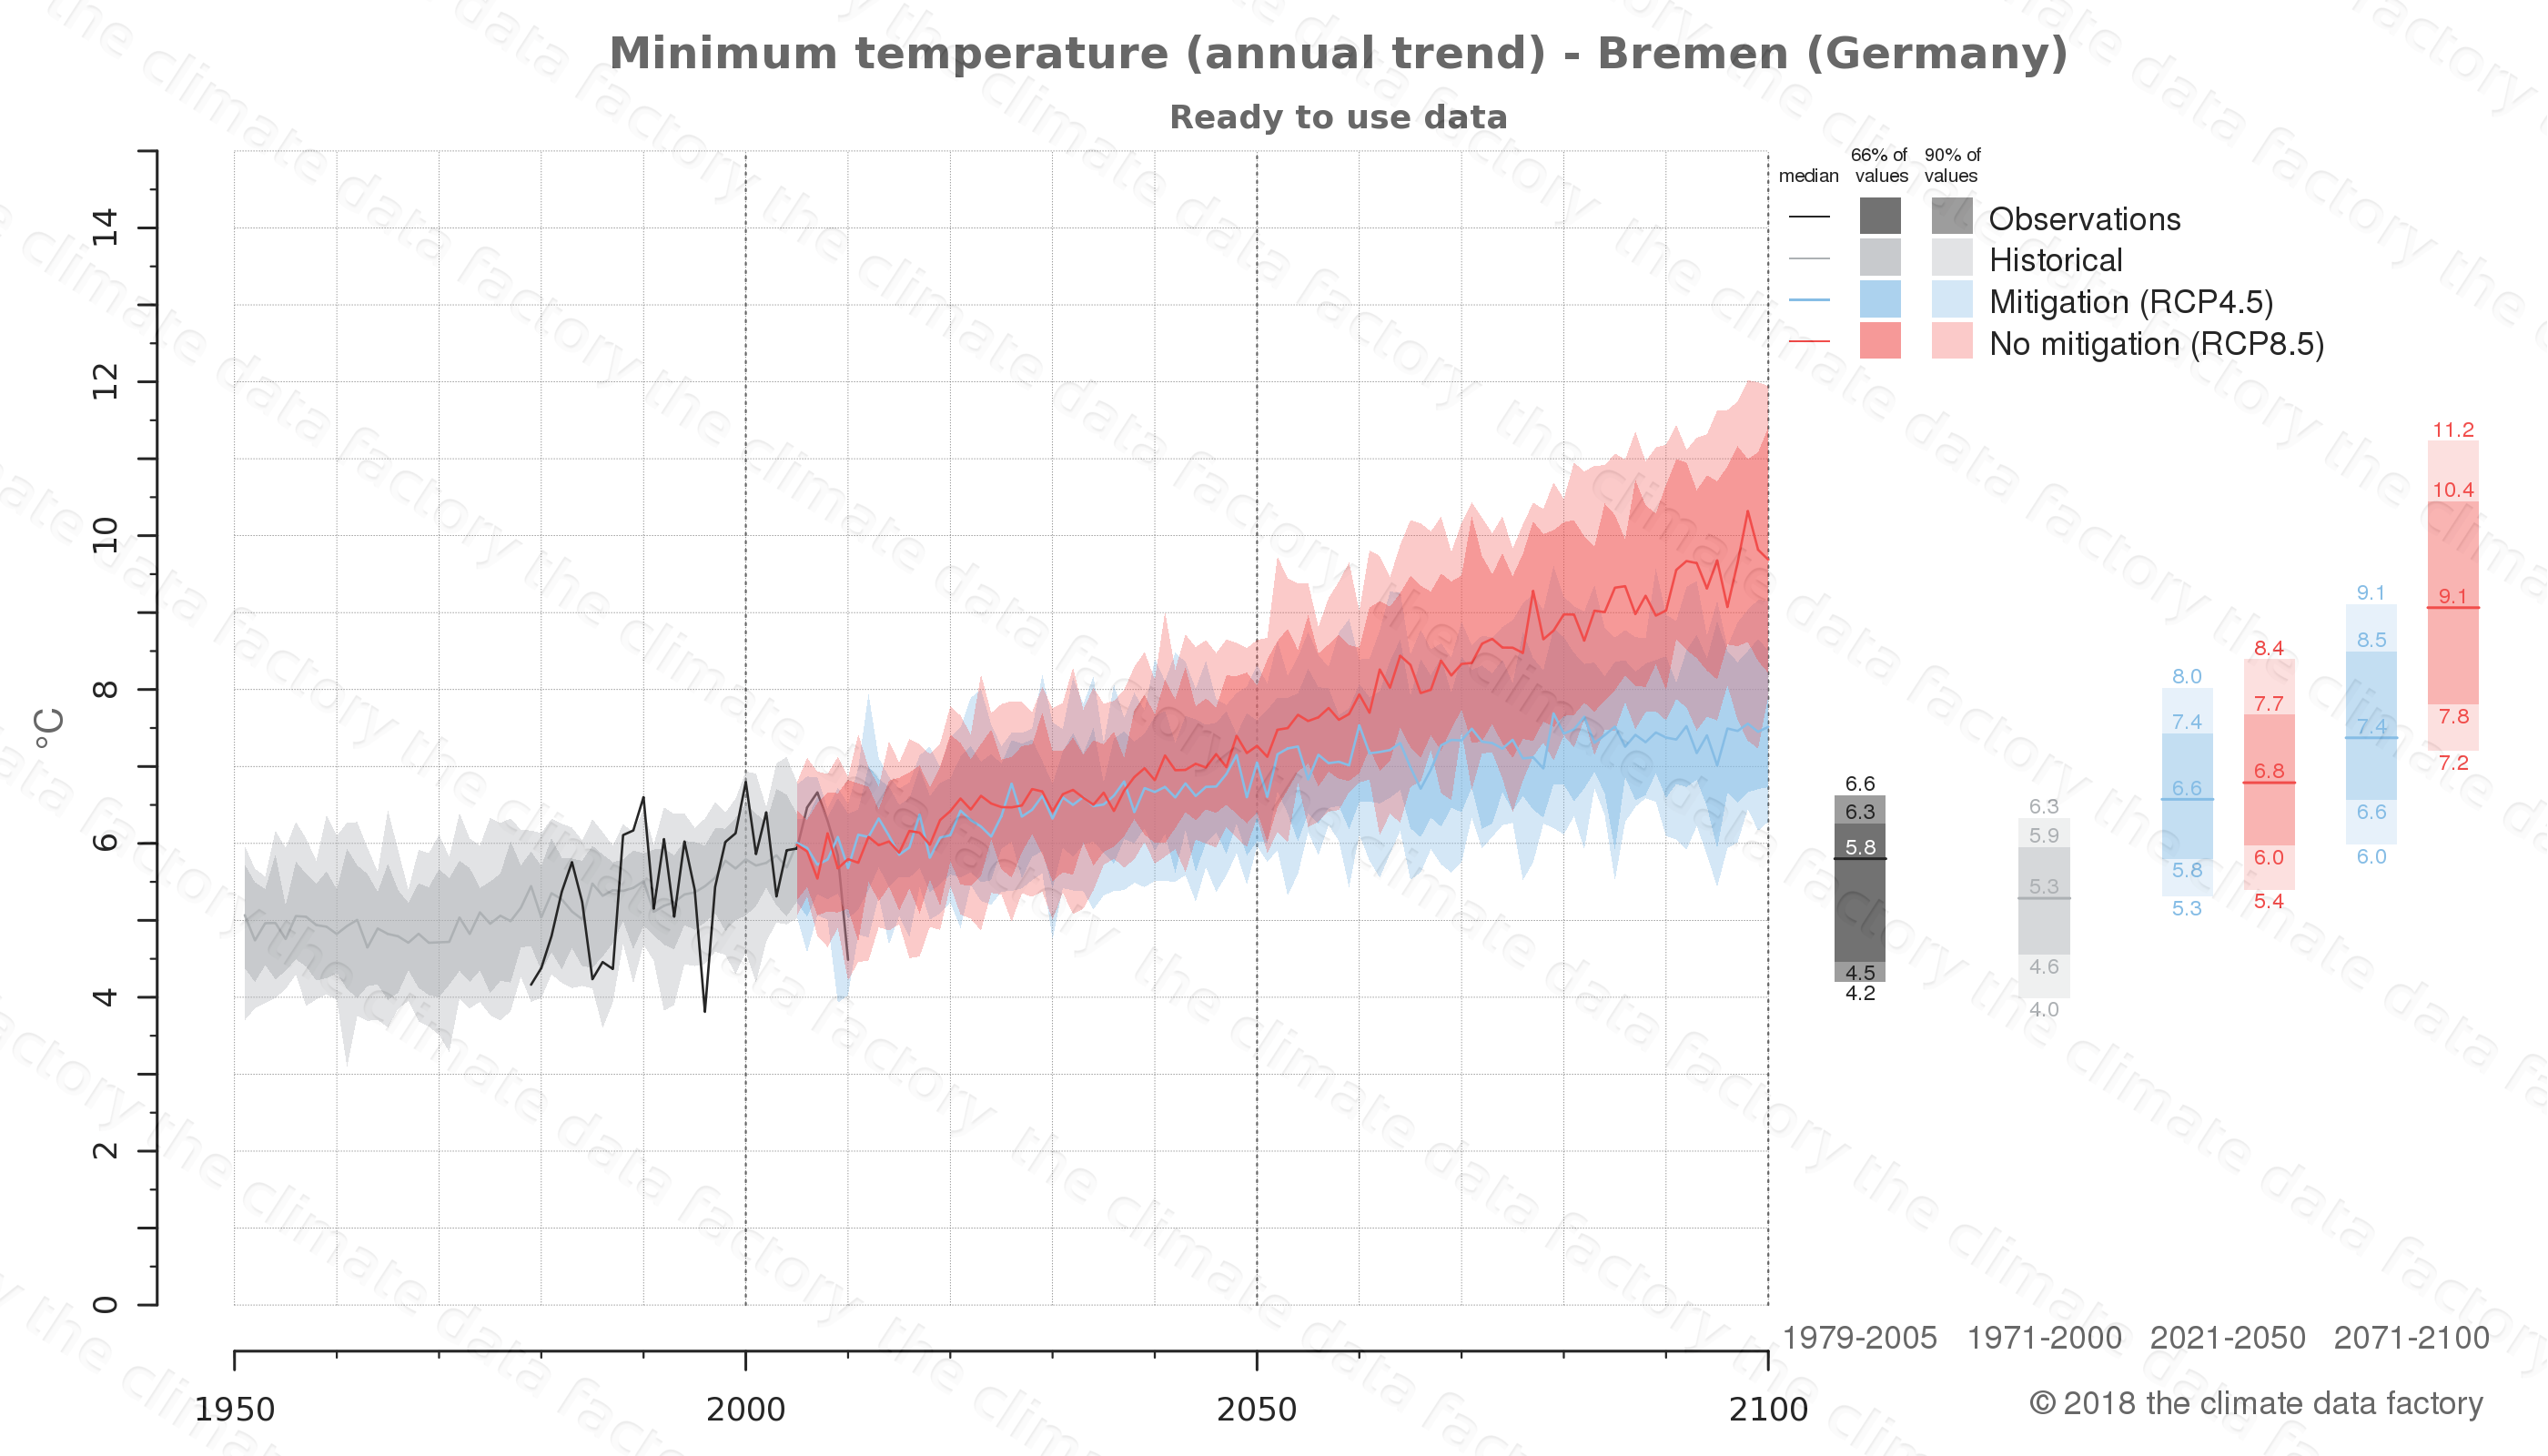 climate change data policy adaptation climate graph city data minimum-temperature bremen germany